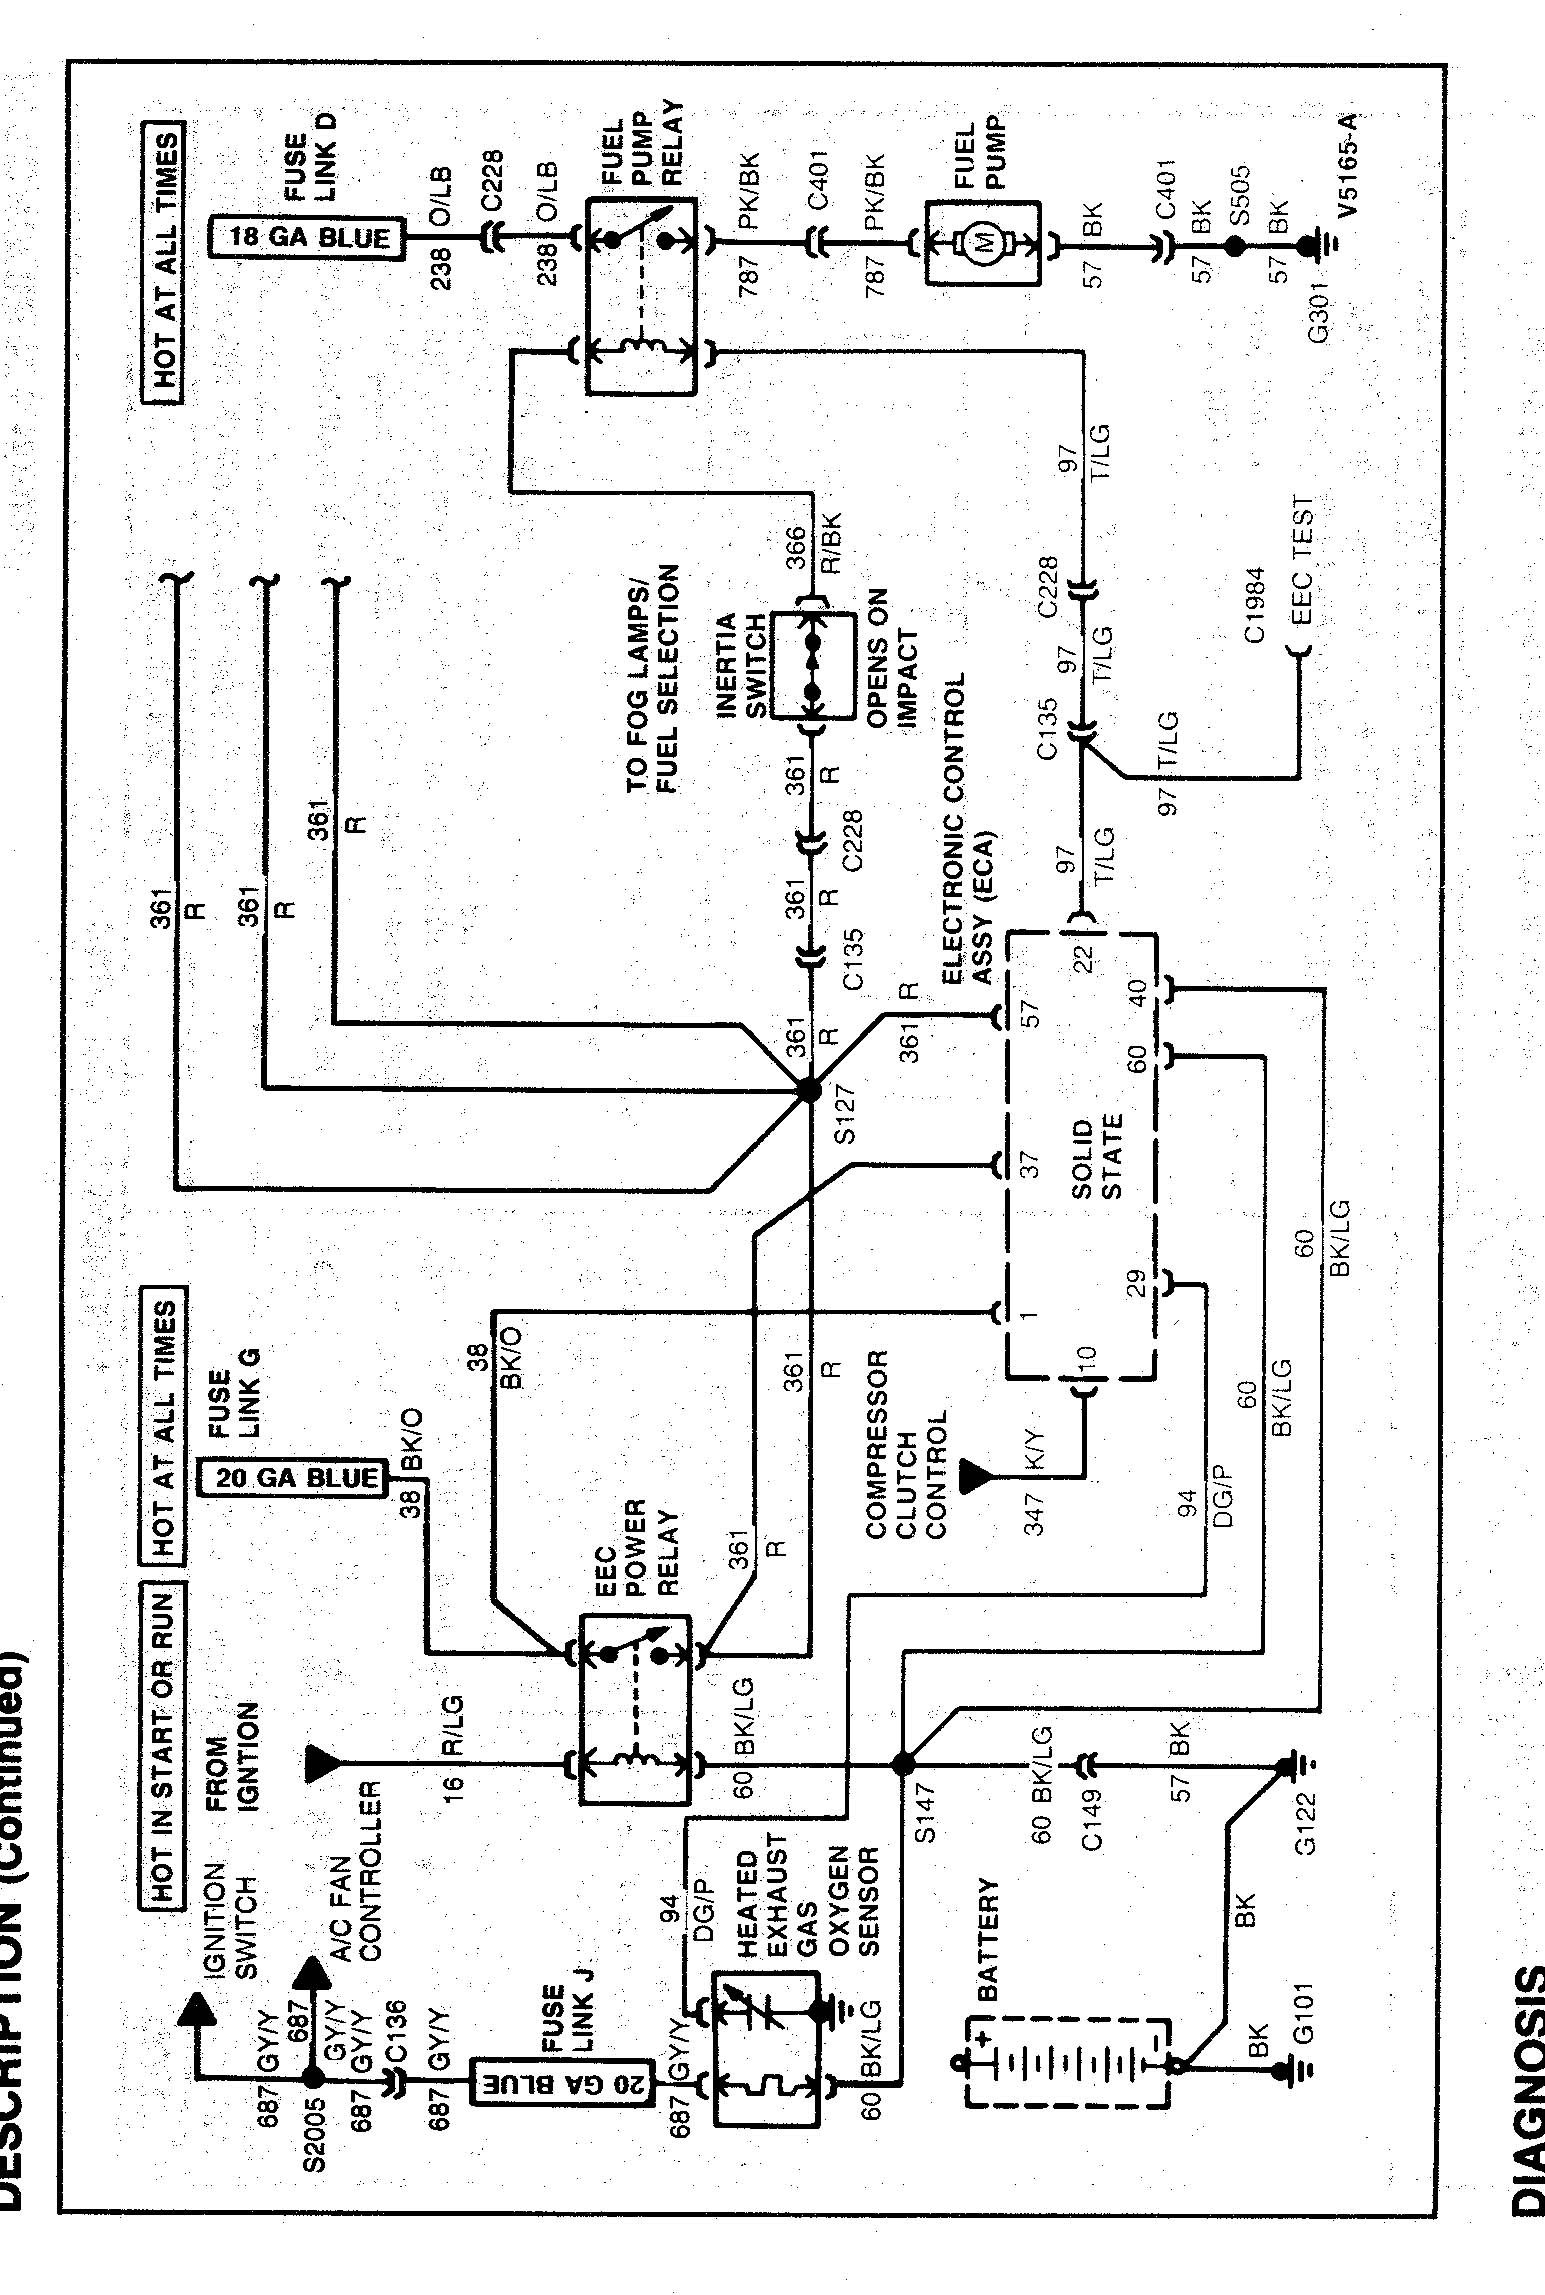 2004 ford f150 engine diagram tachometer wiring diagrams eec relay wire - mustangforums.com